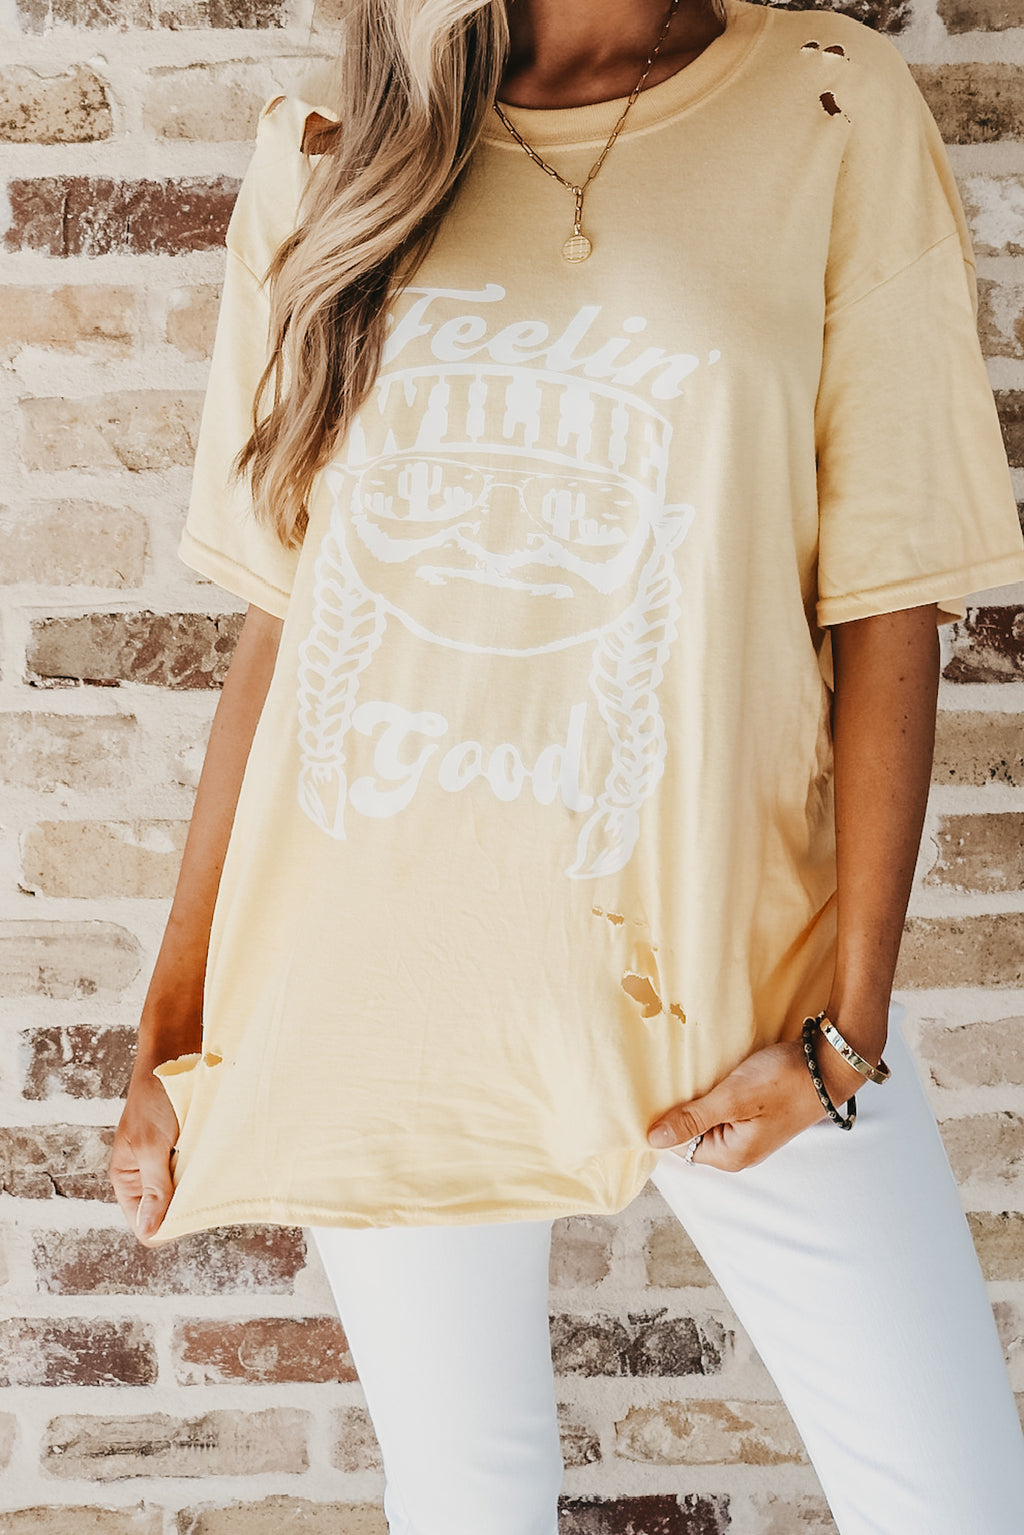 Feelin' Willie Graphic Tee